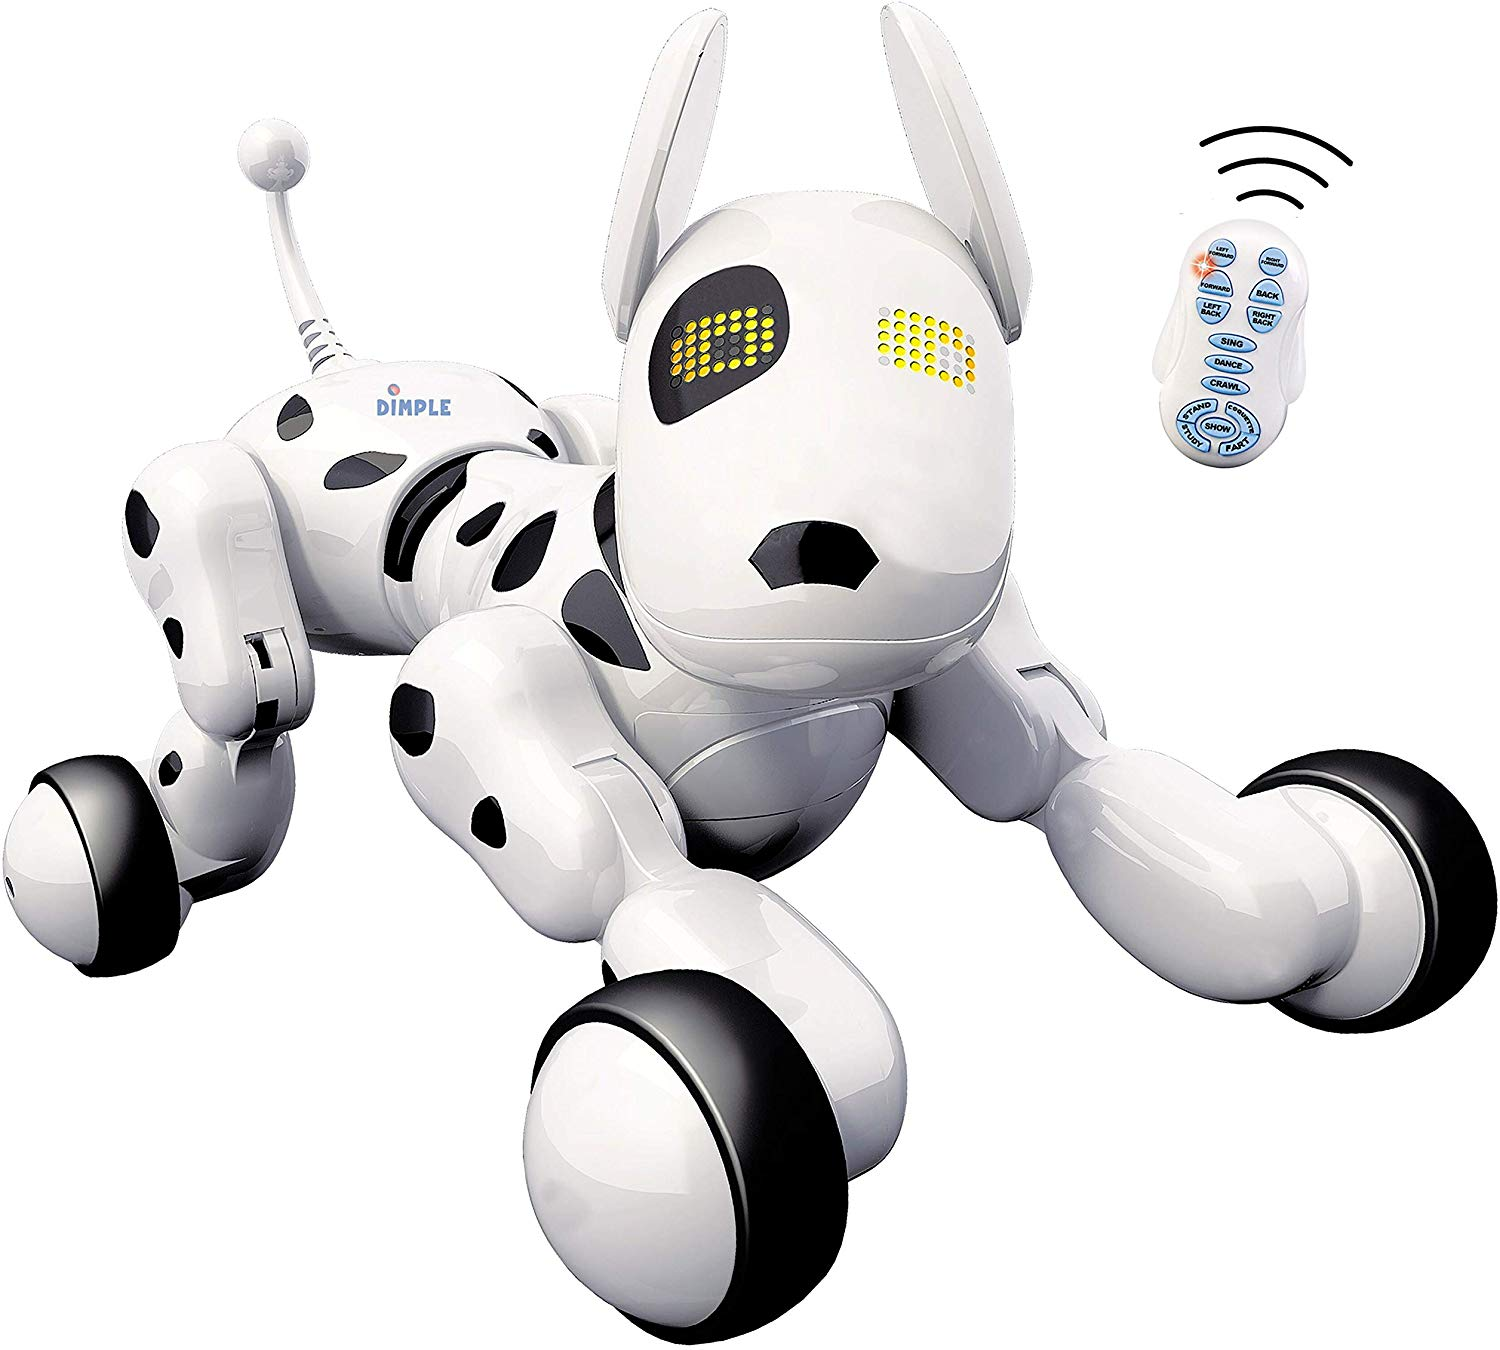 Dimple Interactive Robot Puppy With Wireless Remote Control RC Animal Dog Toy